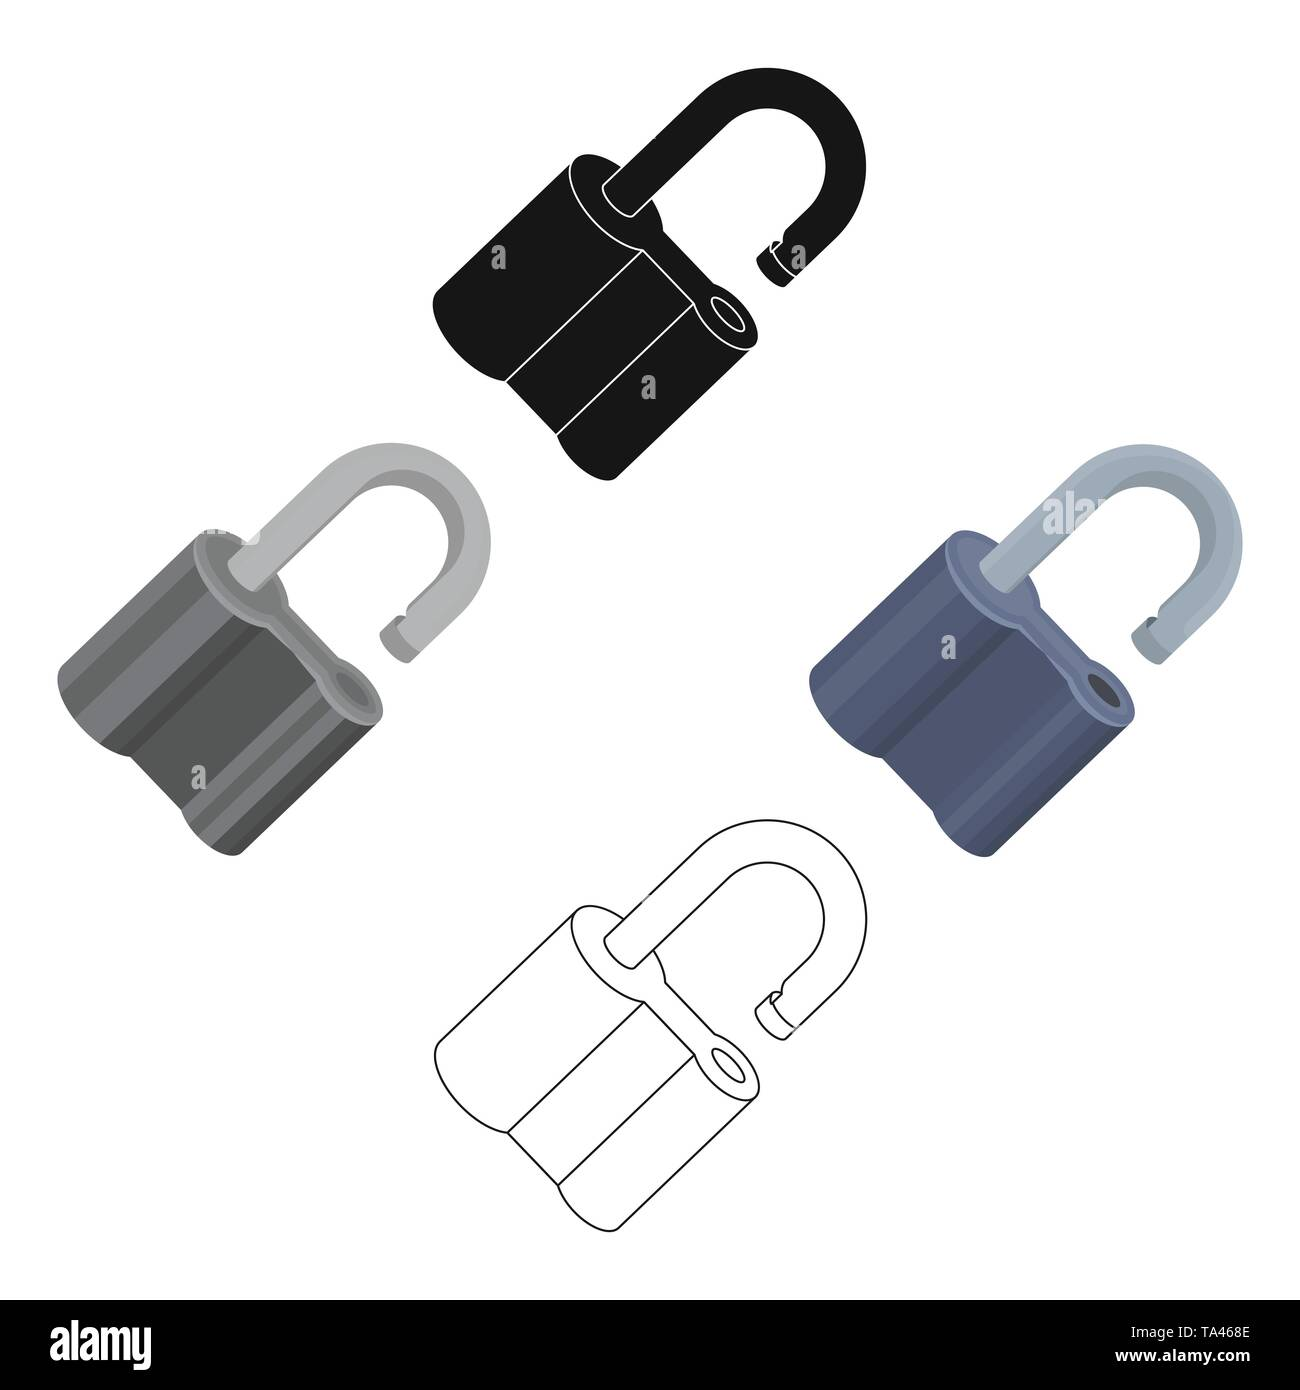 10 Background Business Button Cartoon Black Challenge Closed Code Crime Element Hacked Icon Illustration Isolated Key Lock Locker Logo Object Padlock Password Pathfinder Privacy Private Protection Safe Safety Secret Secure Shape Sign Solve Symbol